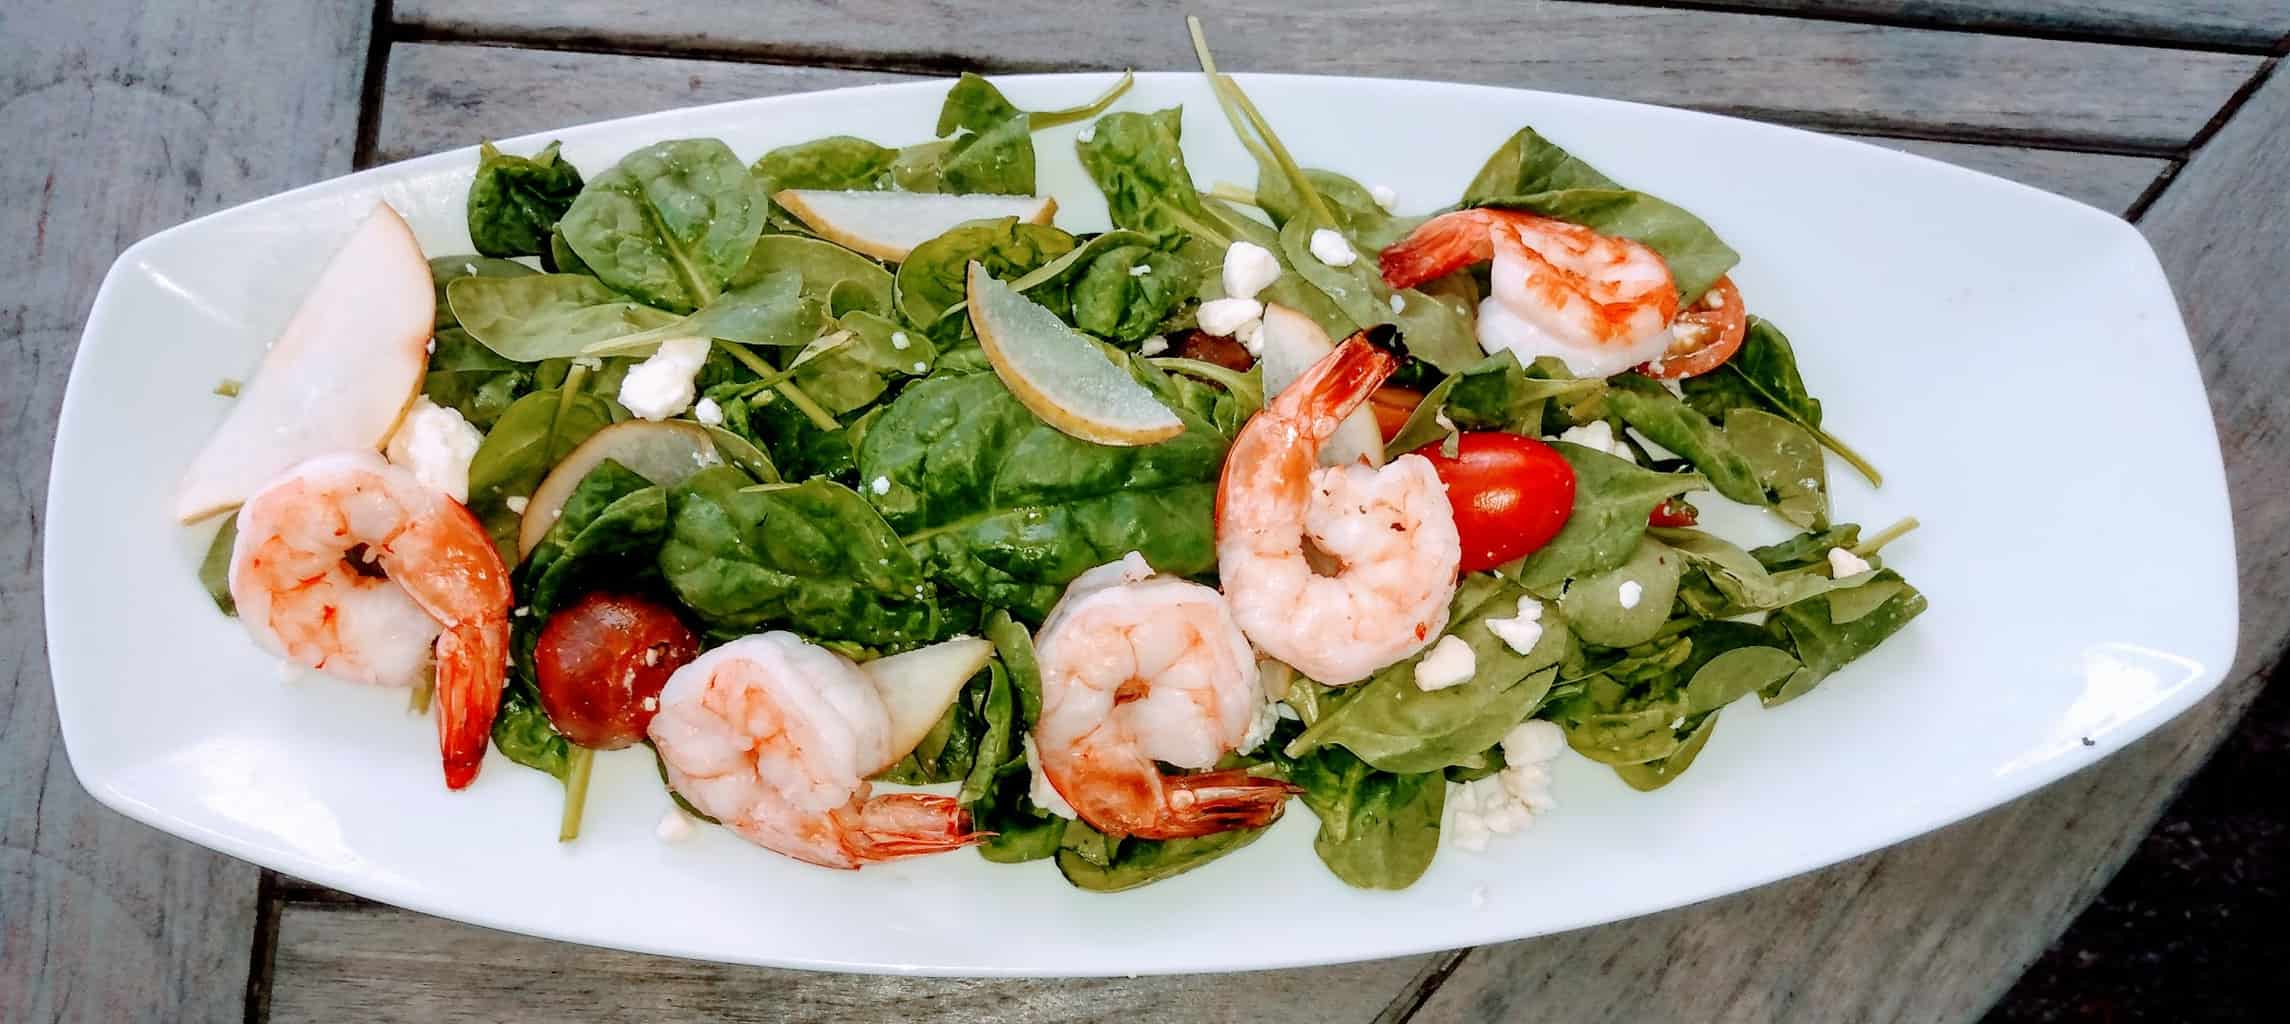 Shrimp Salad at the Pineville Tavern.